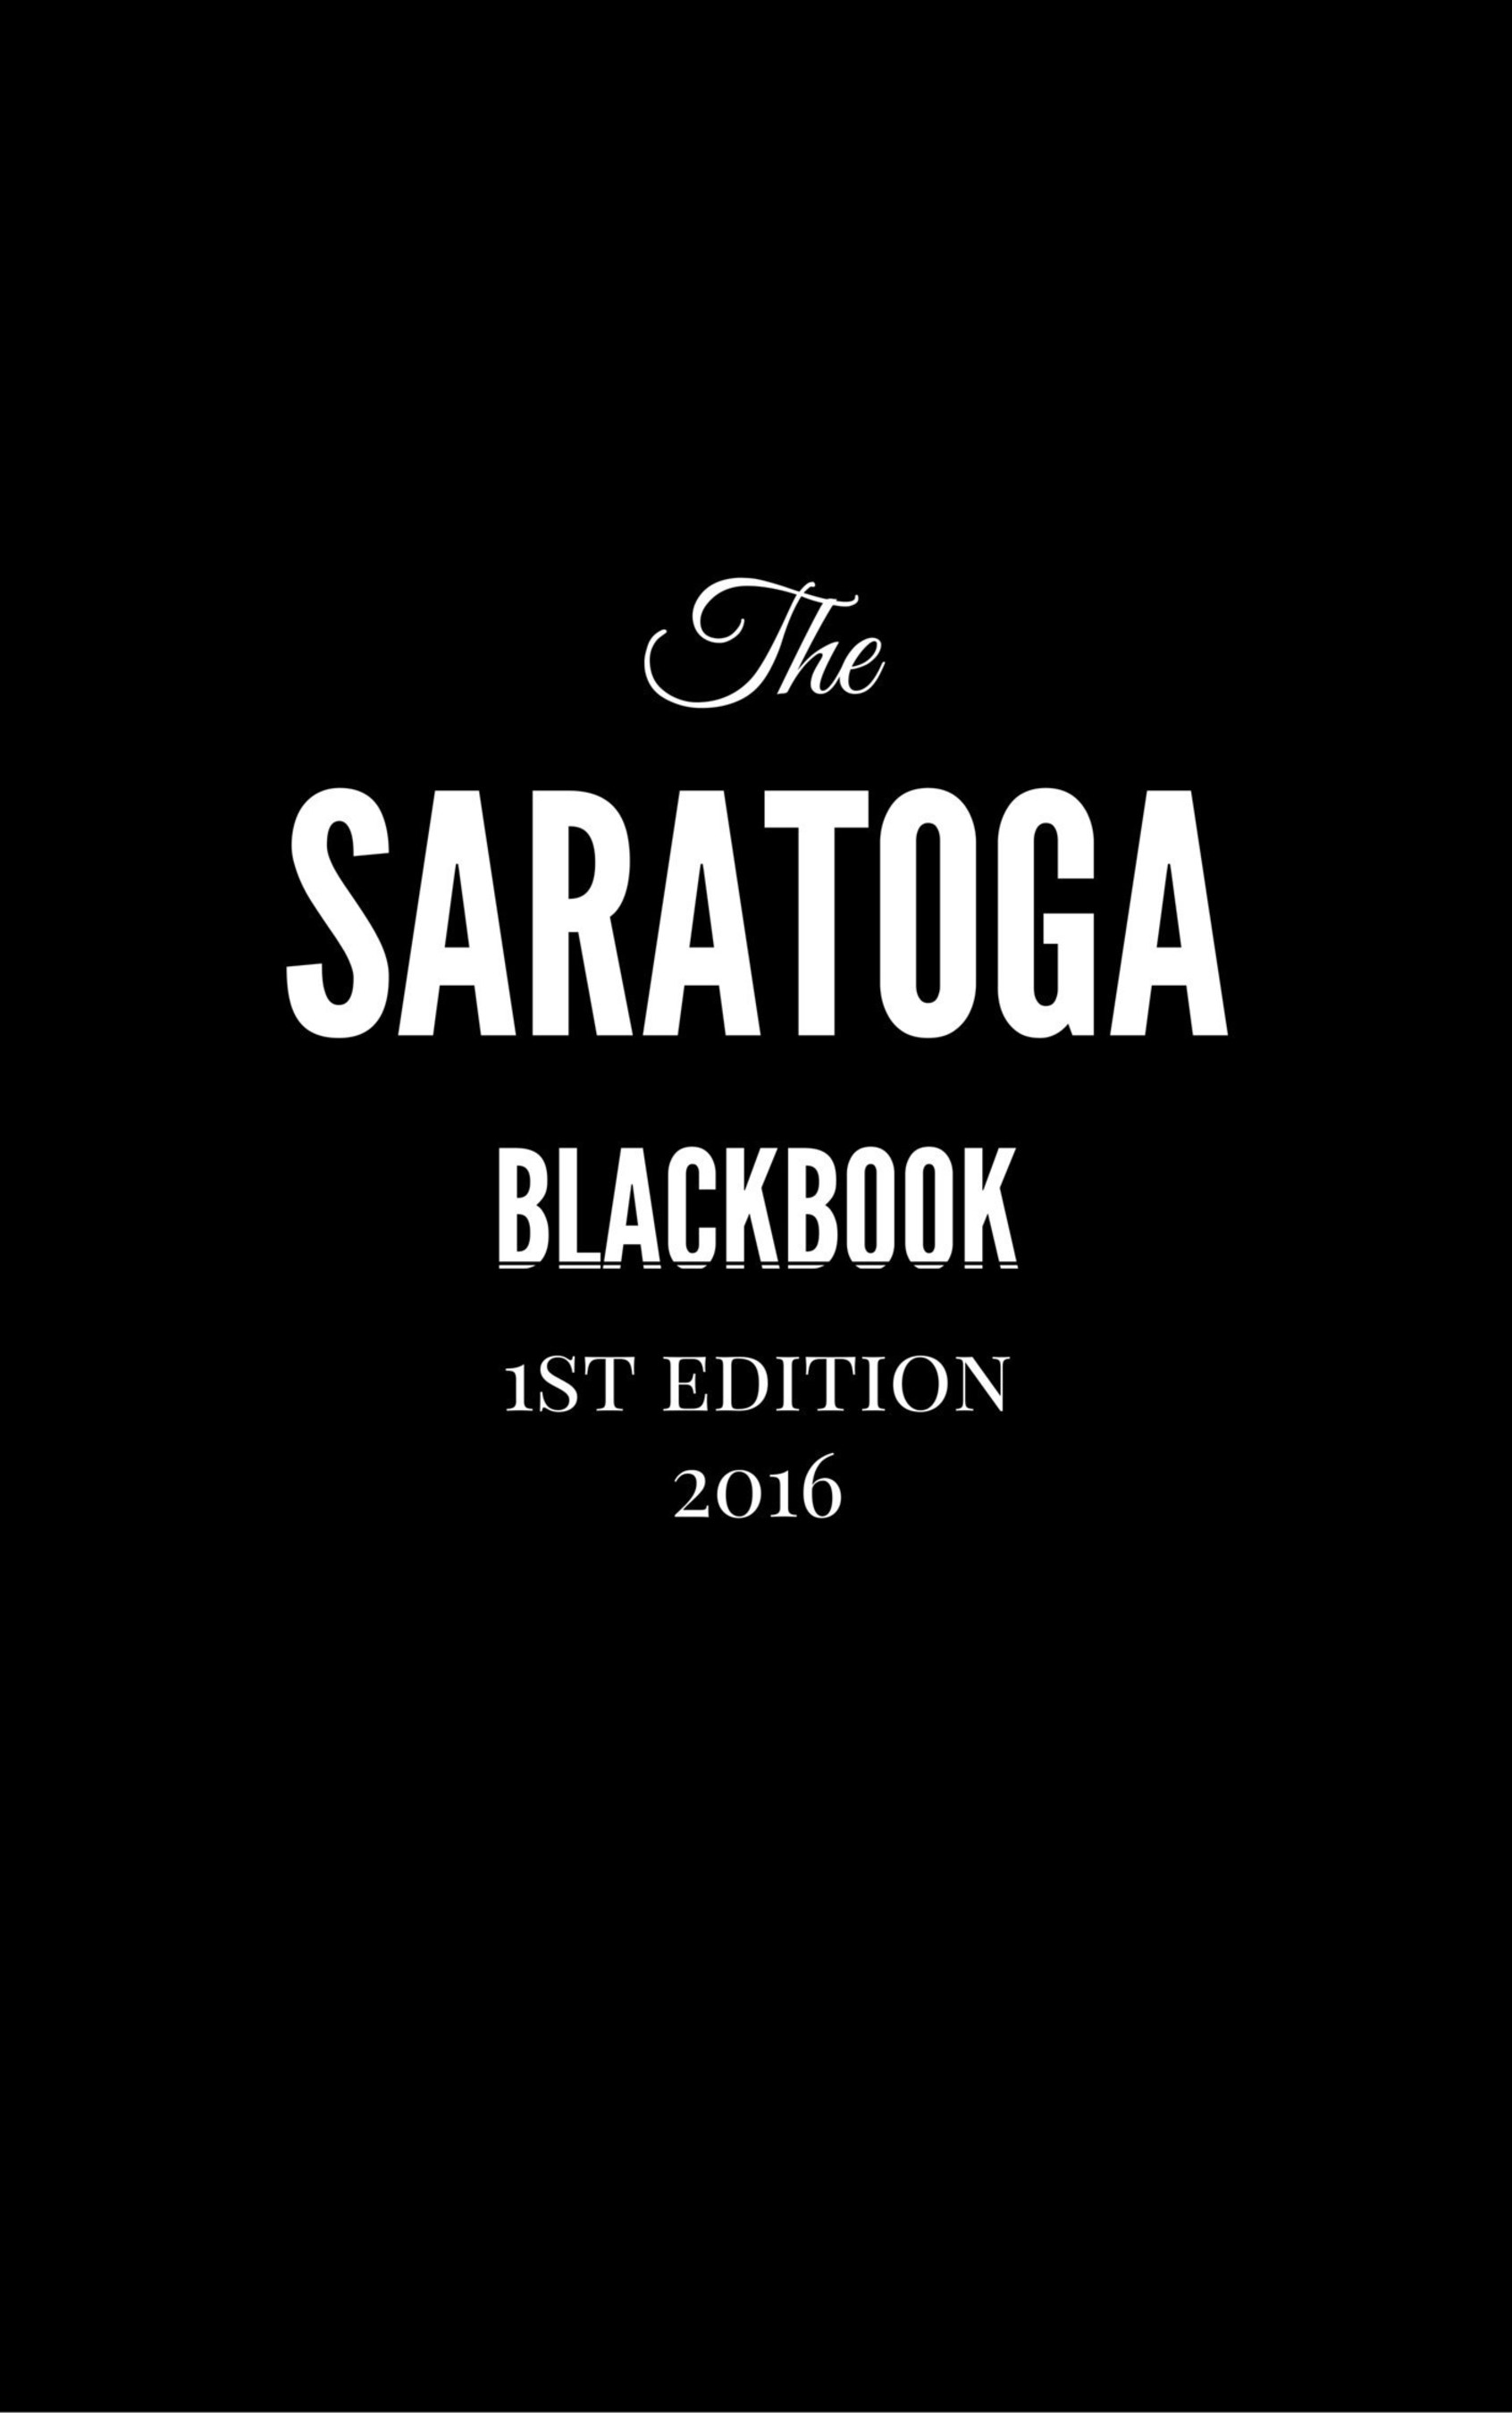 105 pages of aggregated data and statistics for the Saratoga racing meet dating back to 2012 covering 17 trainers, 14 top jockeys, 27 owners and 29 sires.